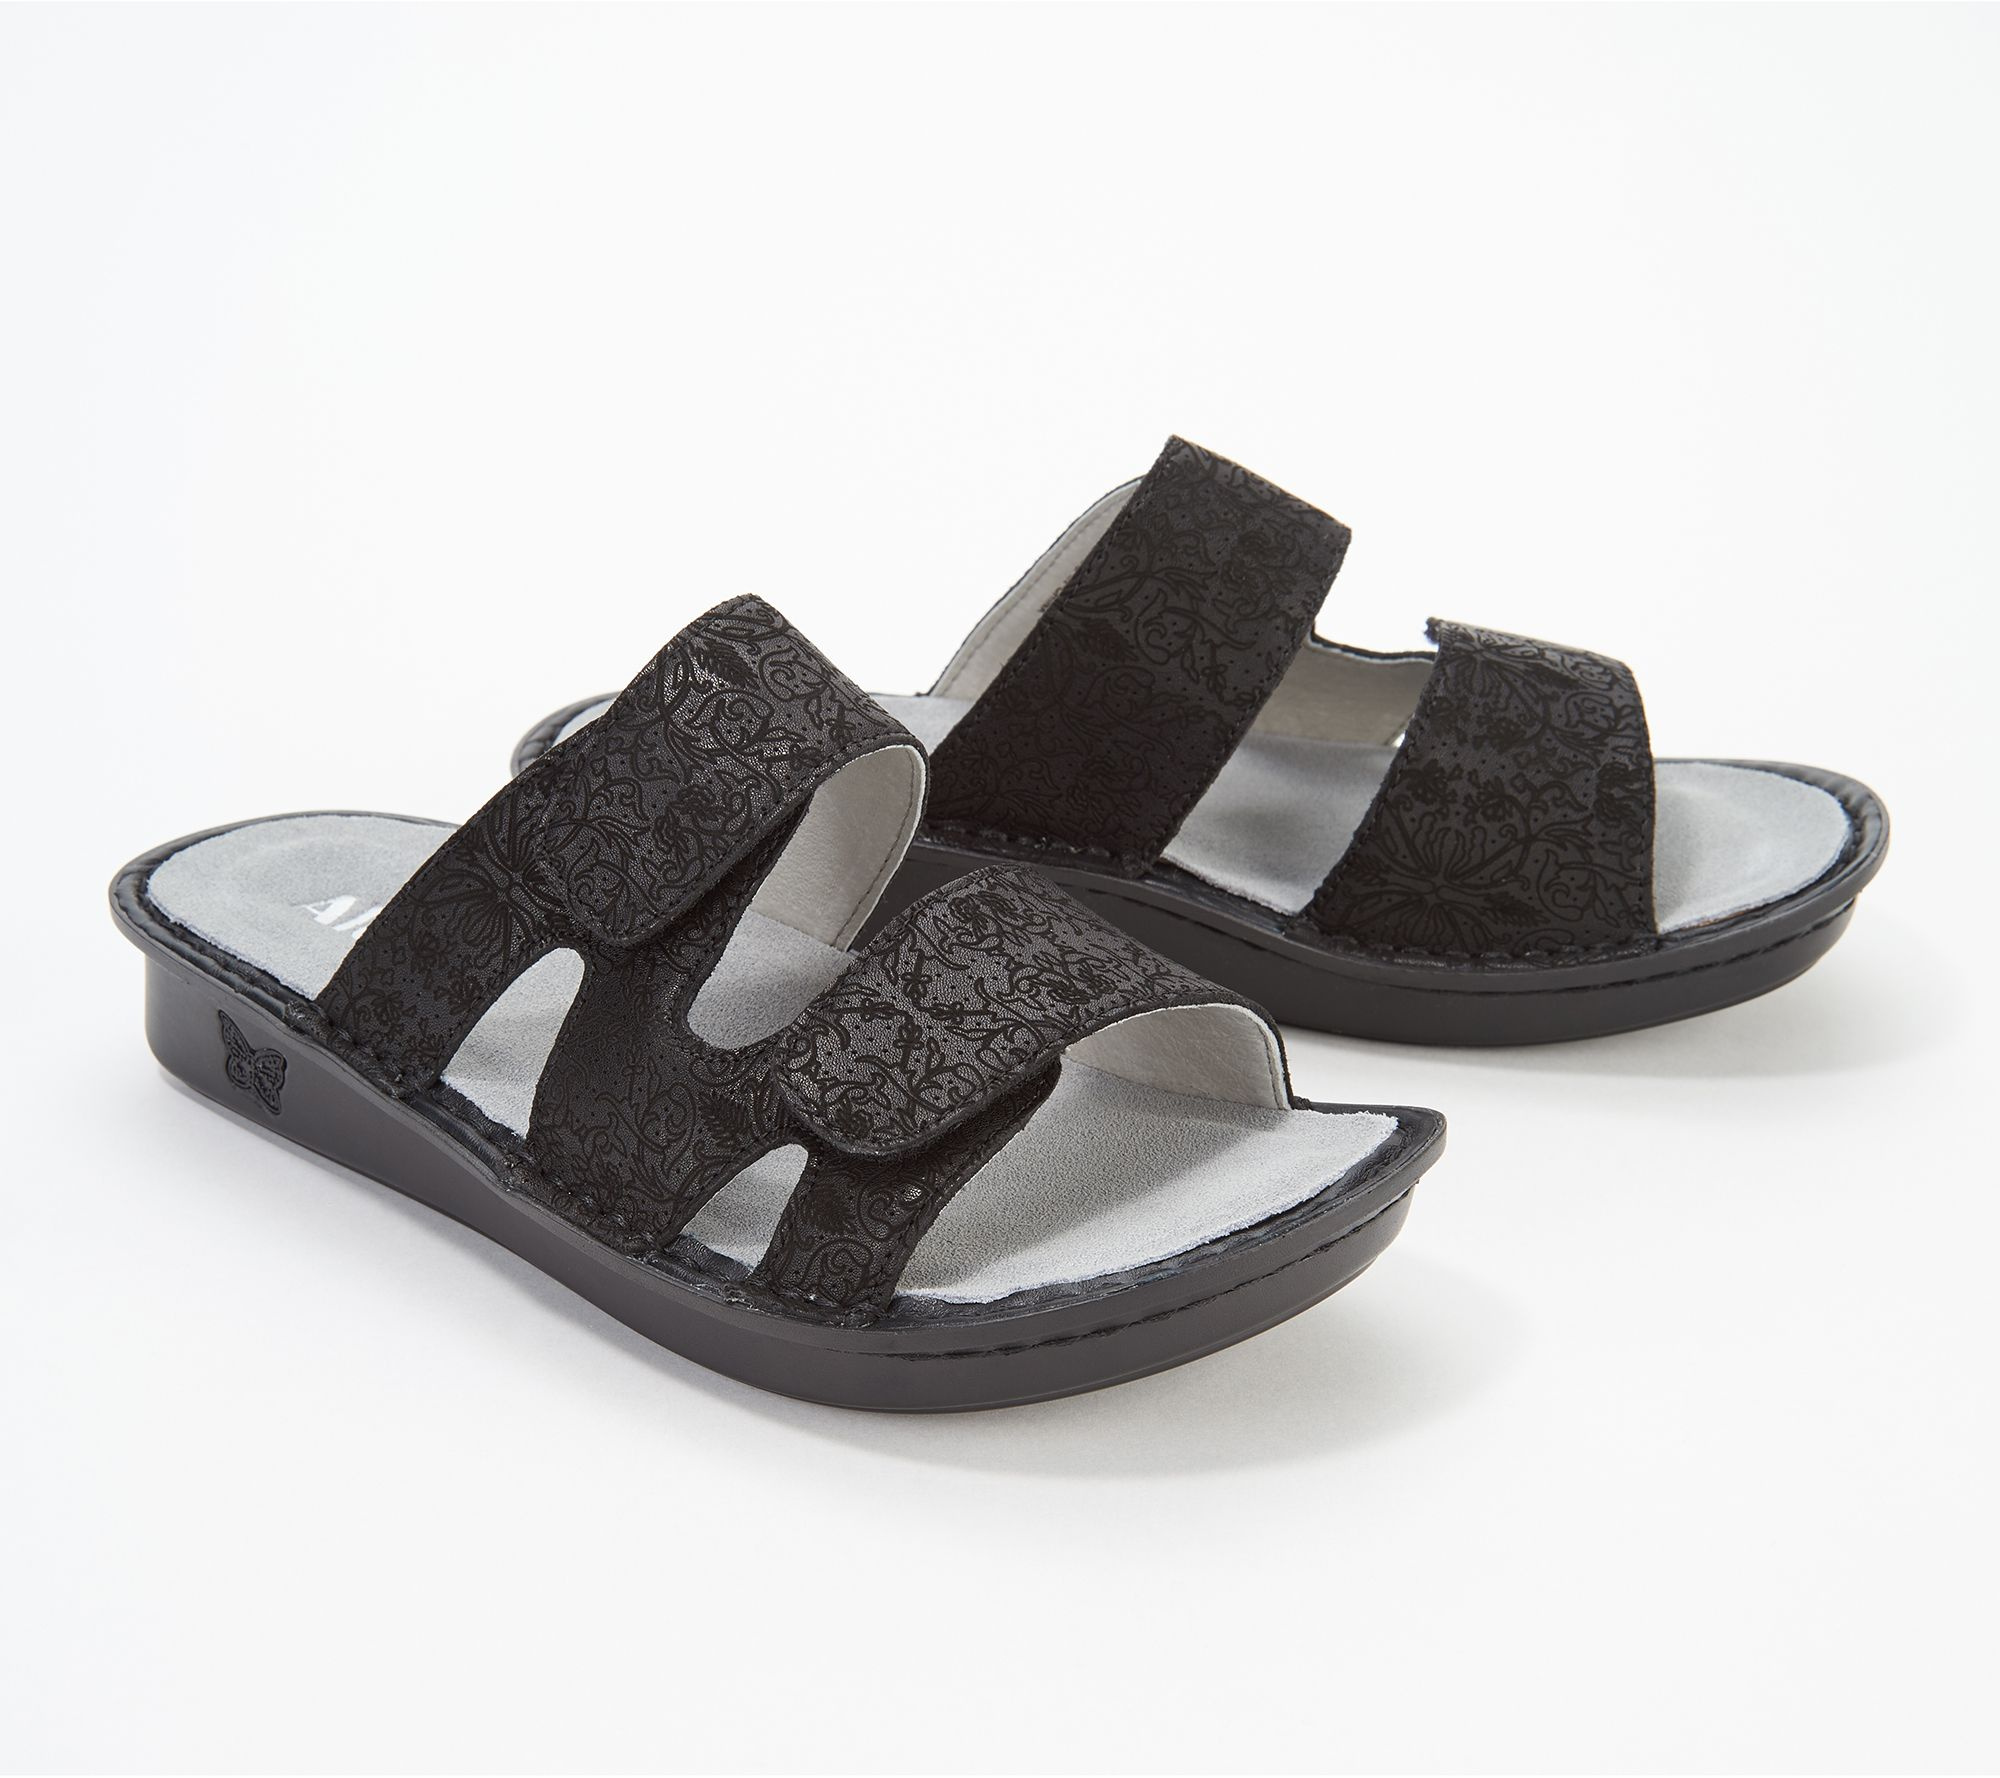 030c12e034c65 Alegria Leather Adjustable Slide Sandals - Stella - Page 1 — QVC.com